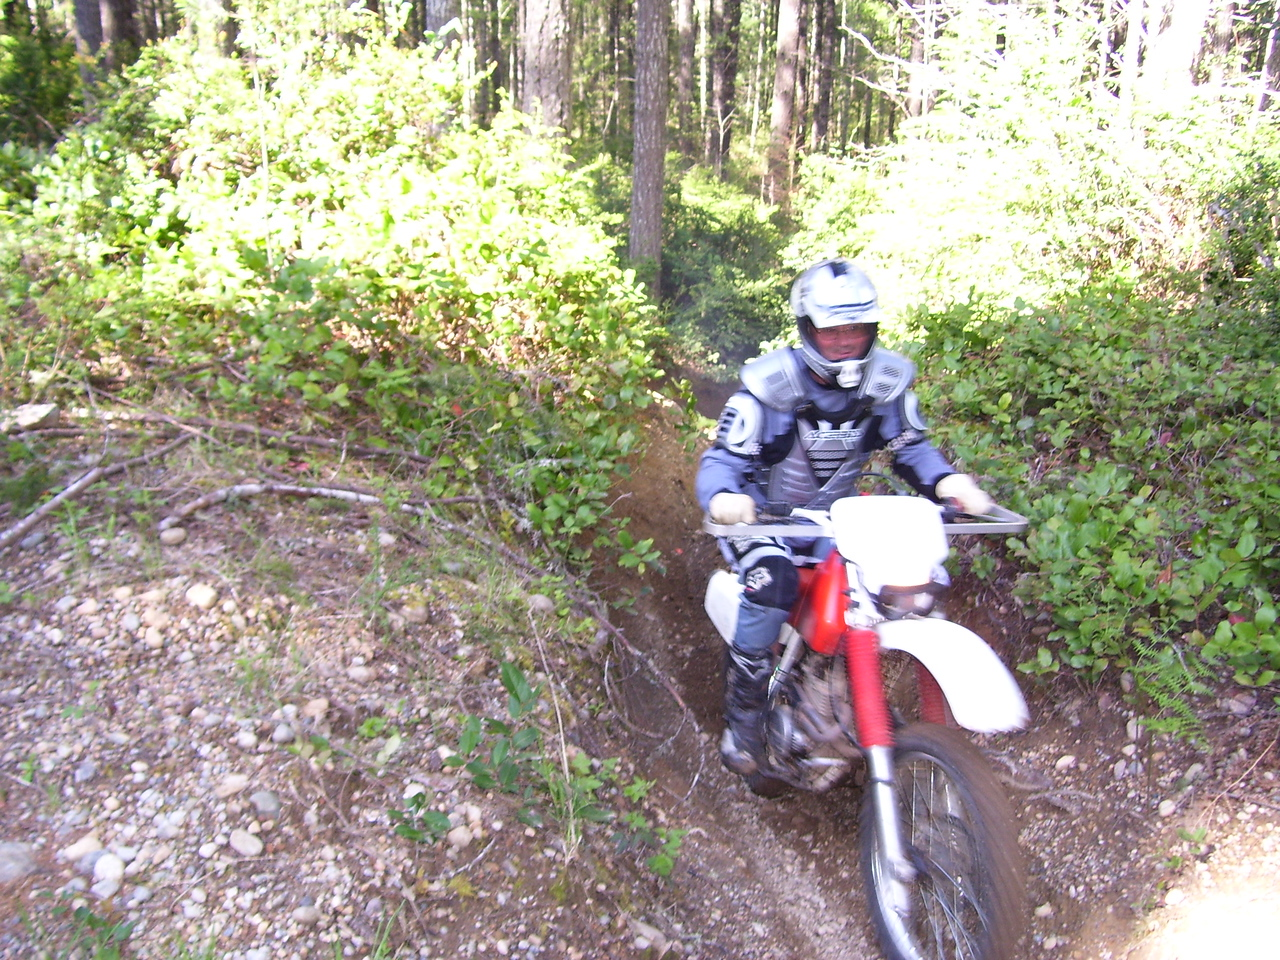 This picture is from April 29th ride, one week following the last venture into the secret forest. Jon C. on his Honda XR 250. We rode 35 miles on a fine, sunny day.